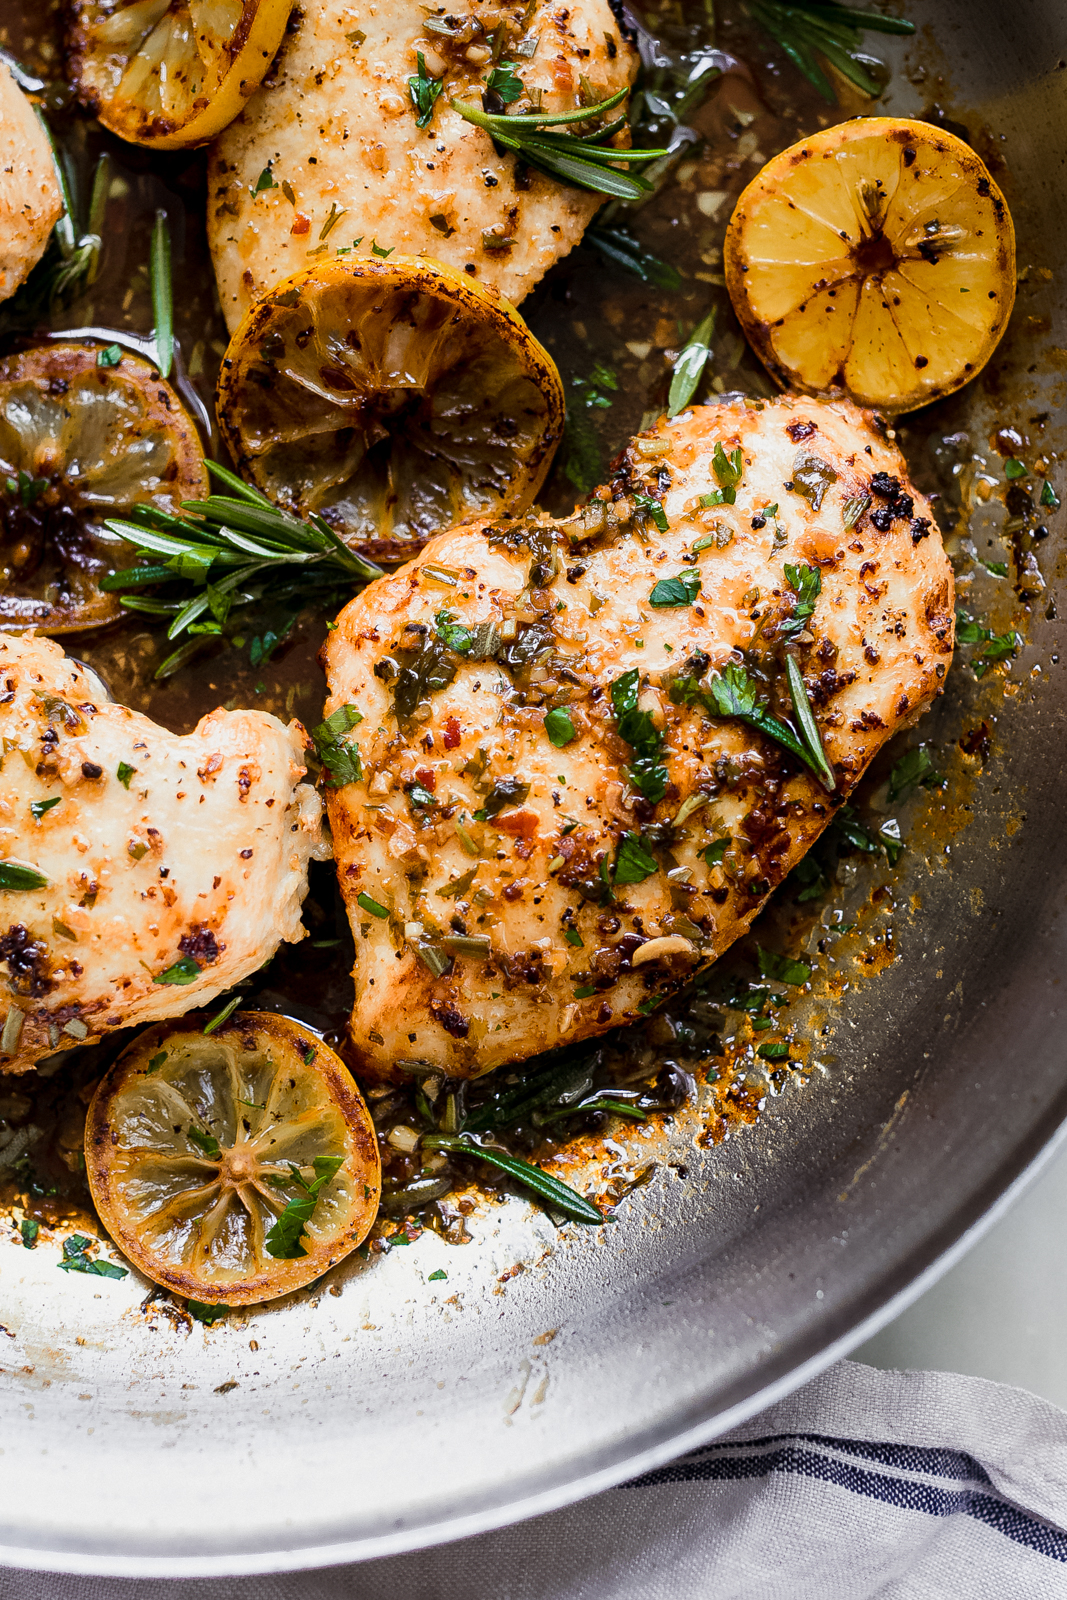 lemon rosemary chicken in a skillet with pan sauce, herbs, and lemon slices